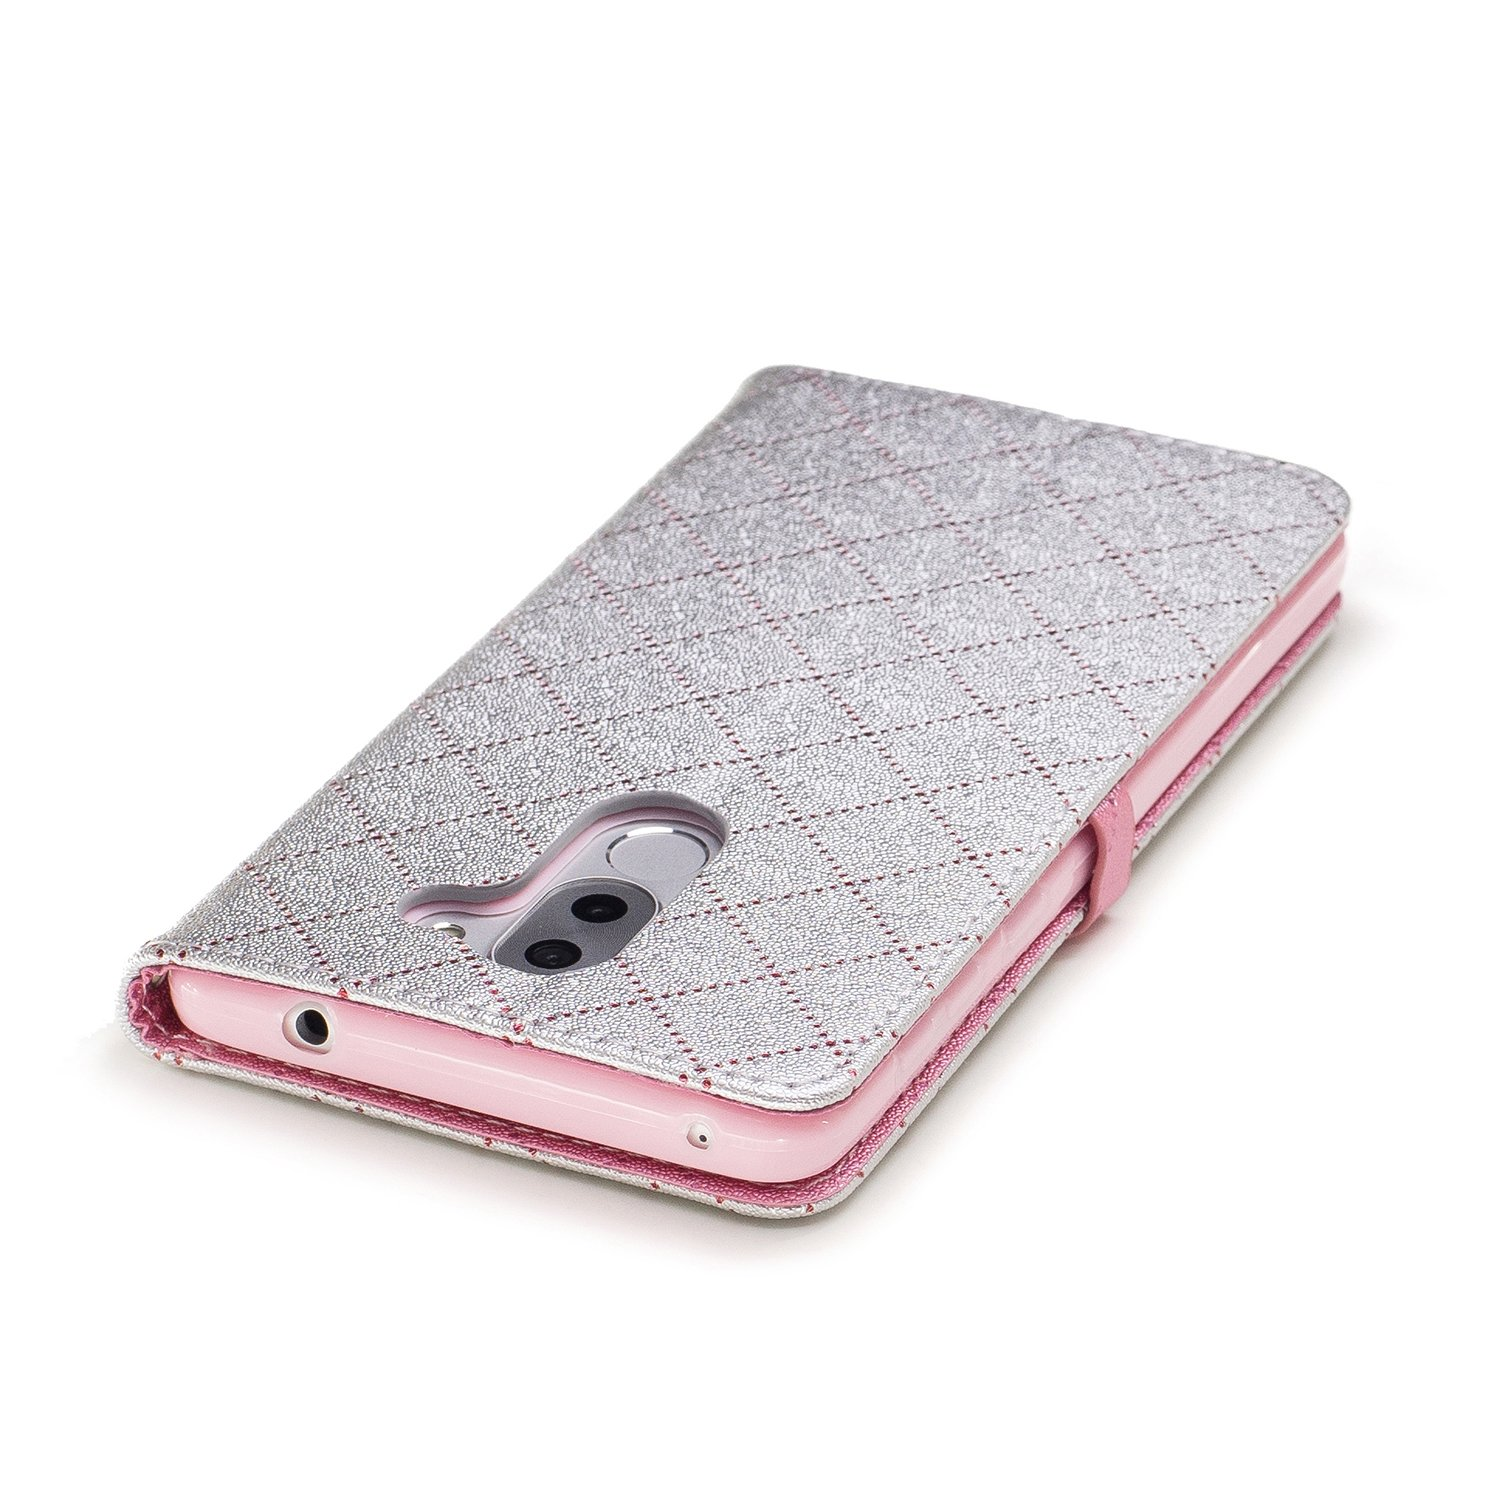 For Huawei Honor 6X Kickstand Feature Magnetic Closure COZY HUT Huawei Honor 6X Wallet Case,Huawei Honor 6X Leather Case,Premium Flip Wallet Case with Rose red love Card Slots